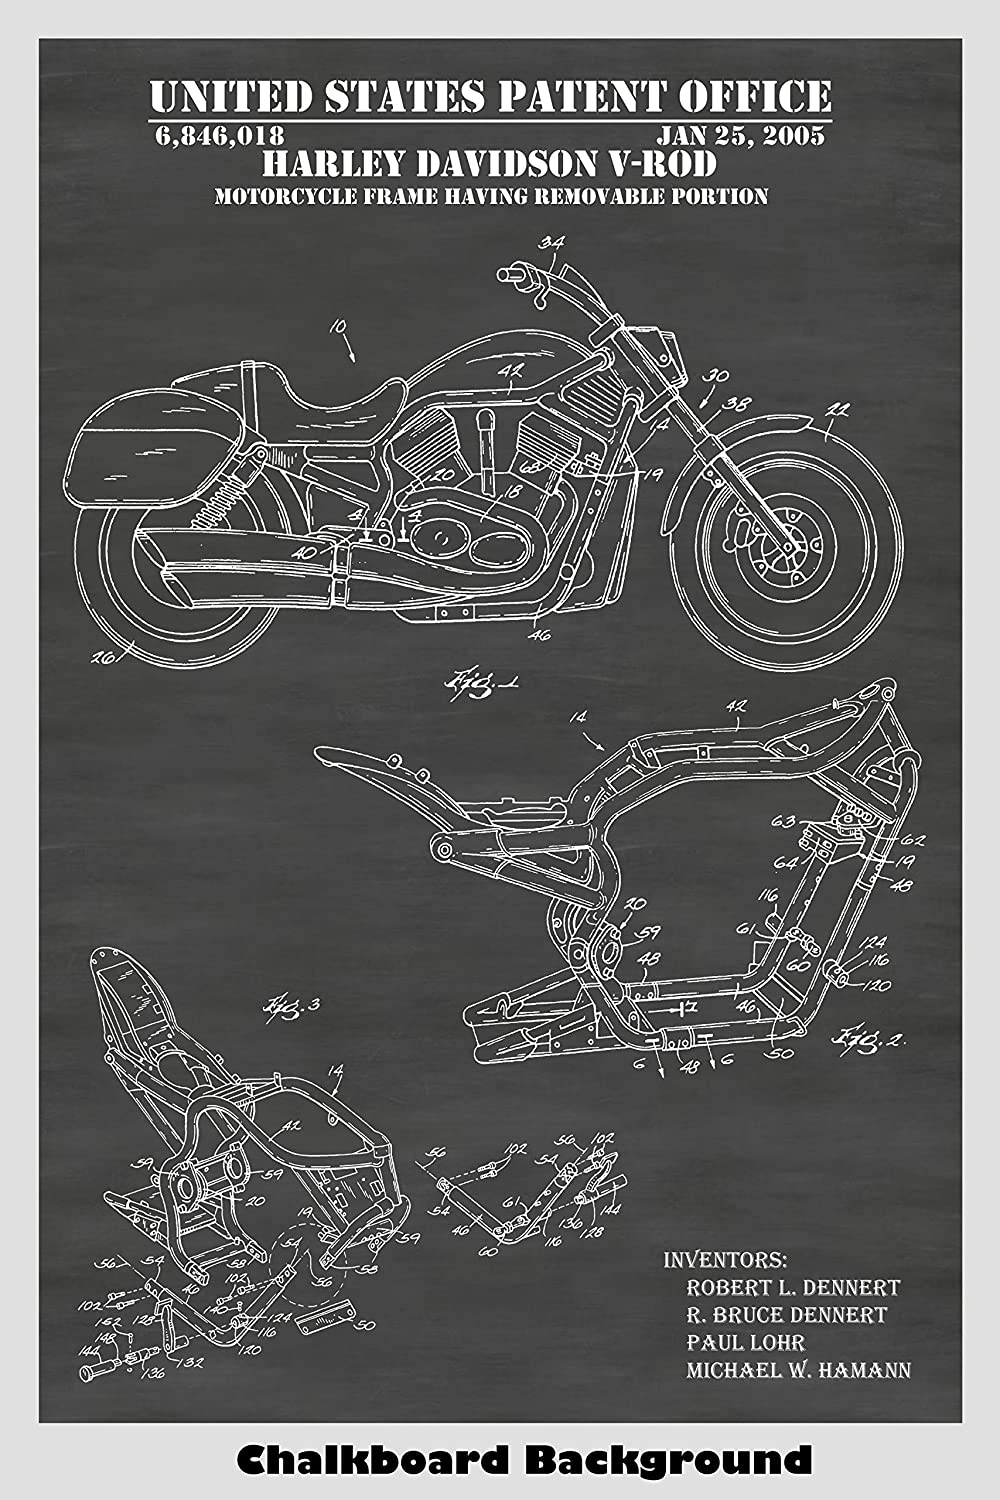 Harley Davidson V-Rod Motorcycle Patent Print Art Poster: Choose From Multiple Size and Background Color Options